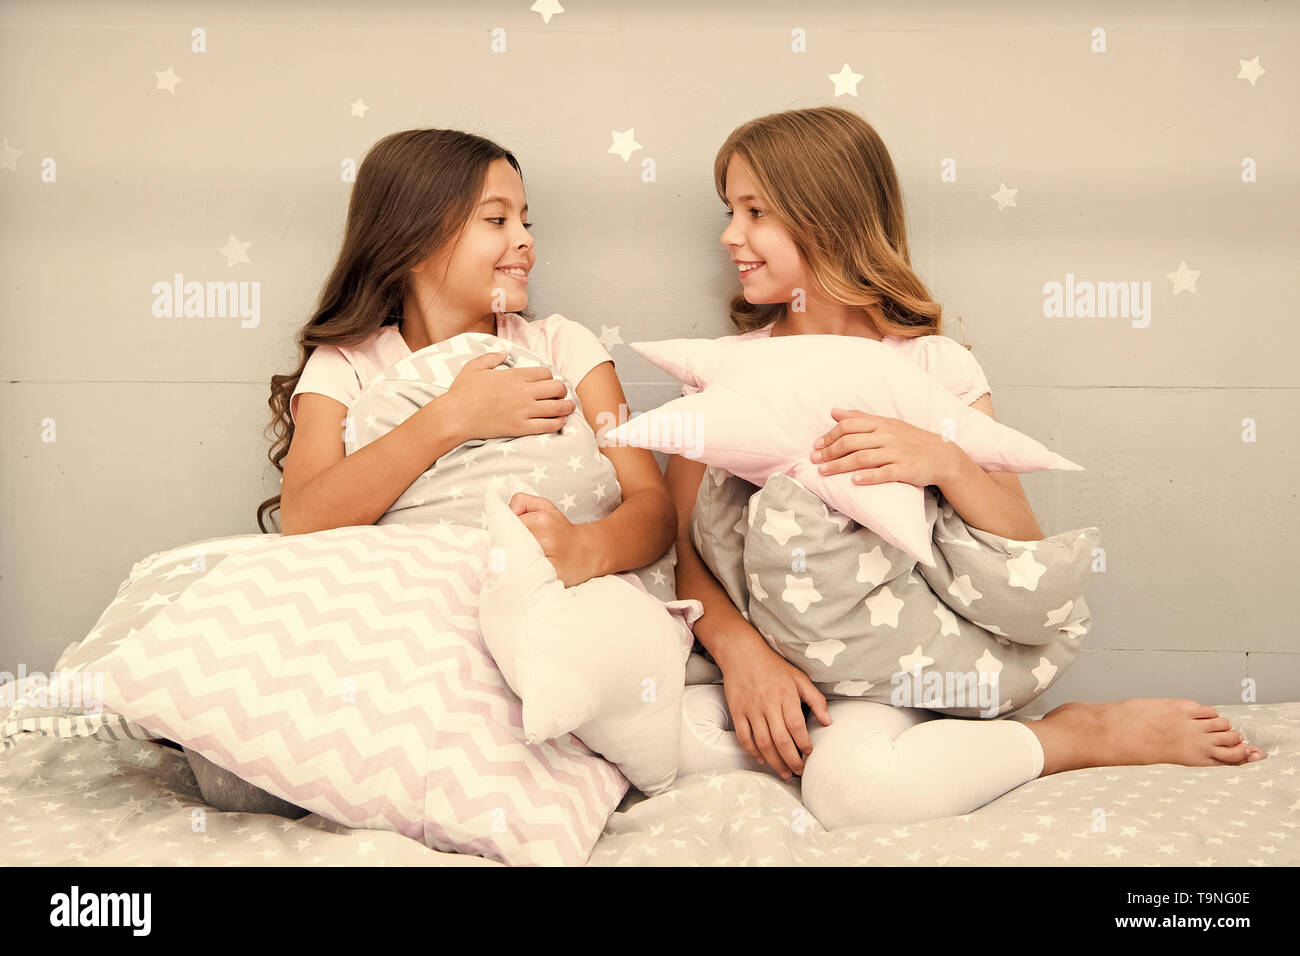 Girls children on bed with cute pillows. Pajamas party concept. Girls just want to have fun. Girlish secrets honest and sincere. Friends kids have nic - Stock Image